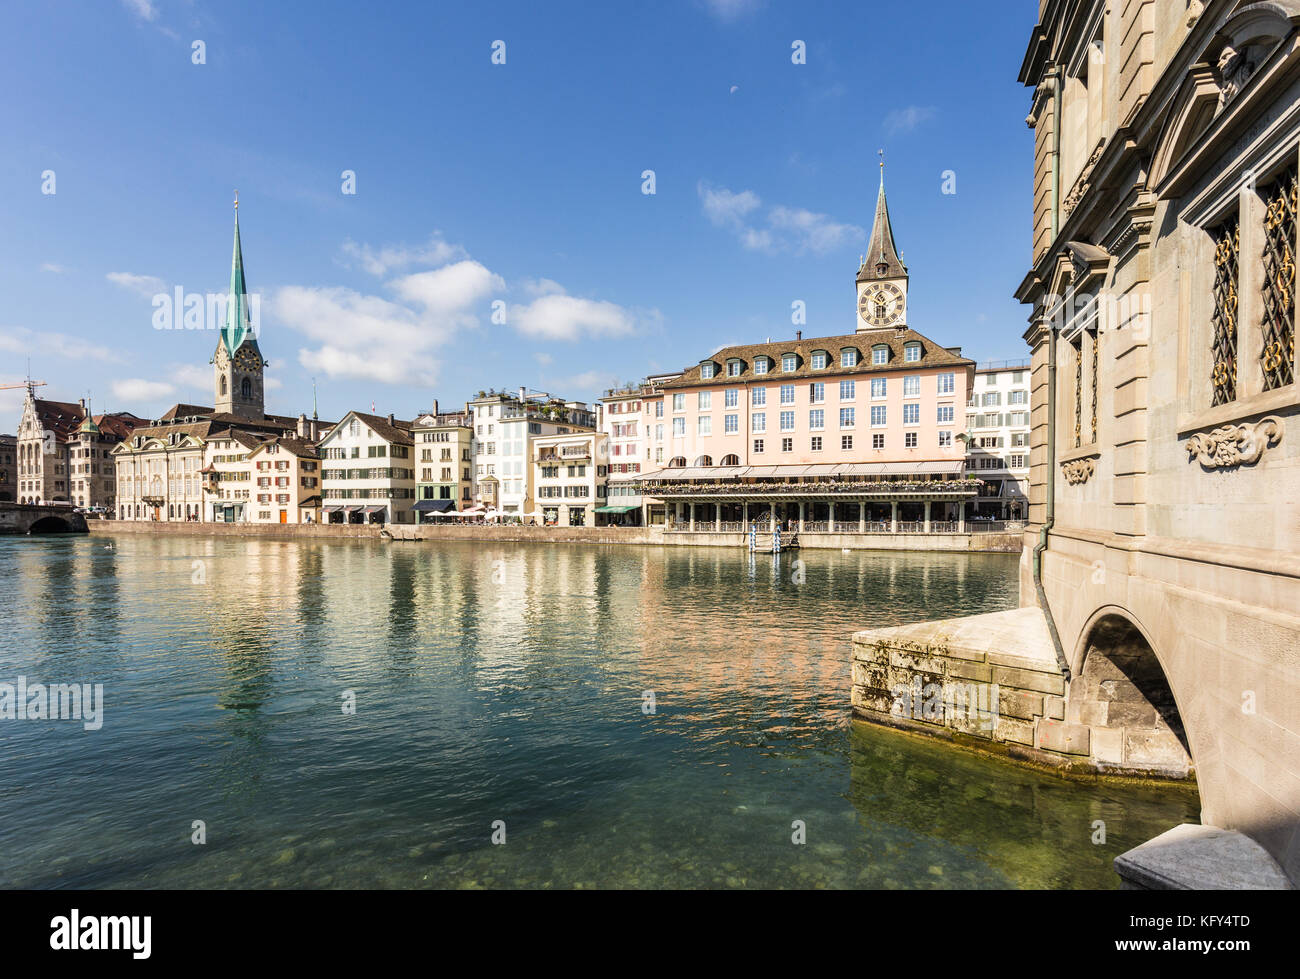 The facades of traditional building reflecting in the Limmat river in Zurich old town in Switzerland on a sunny - Stock Image